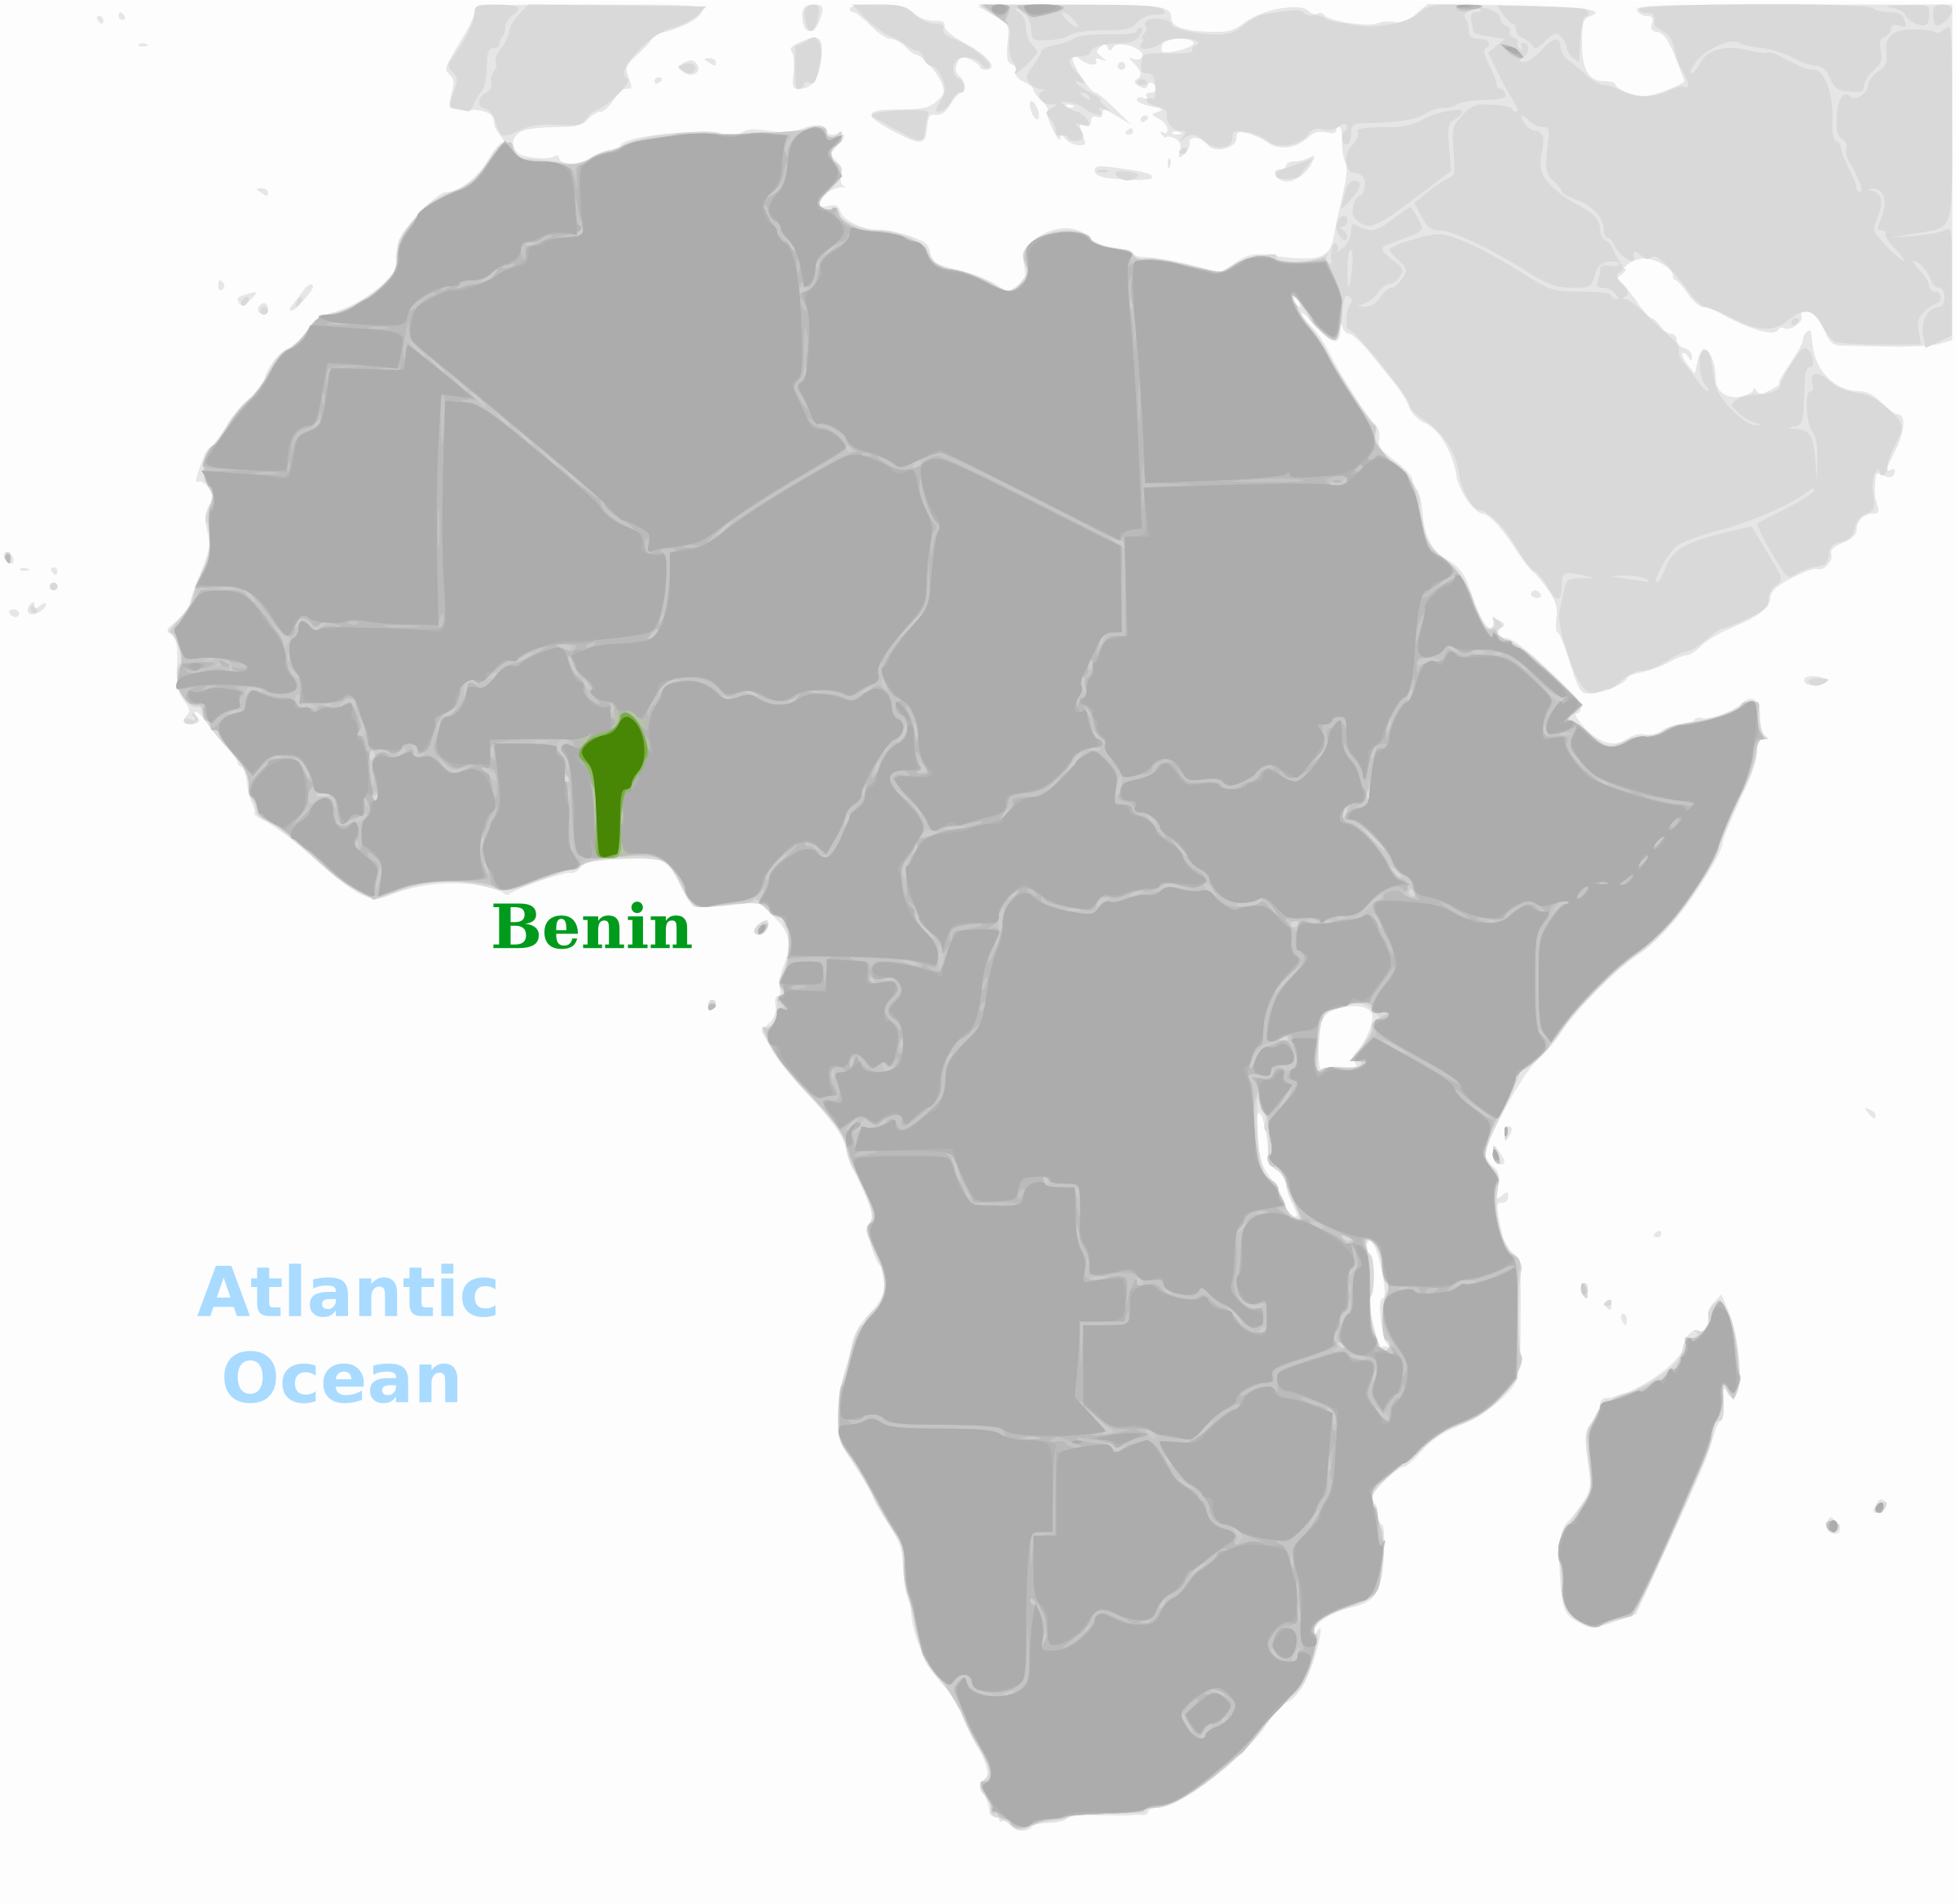 Benin location label by wpclipart